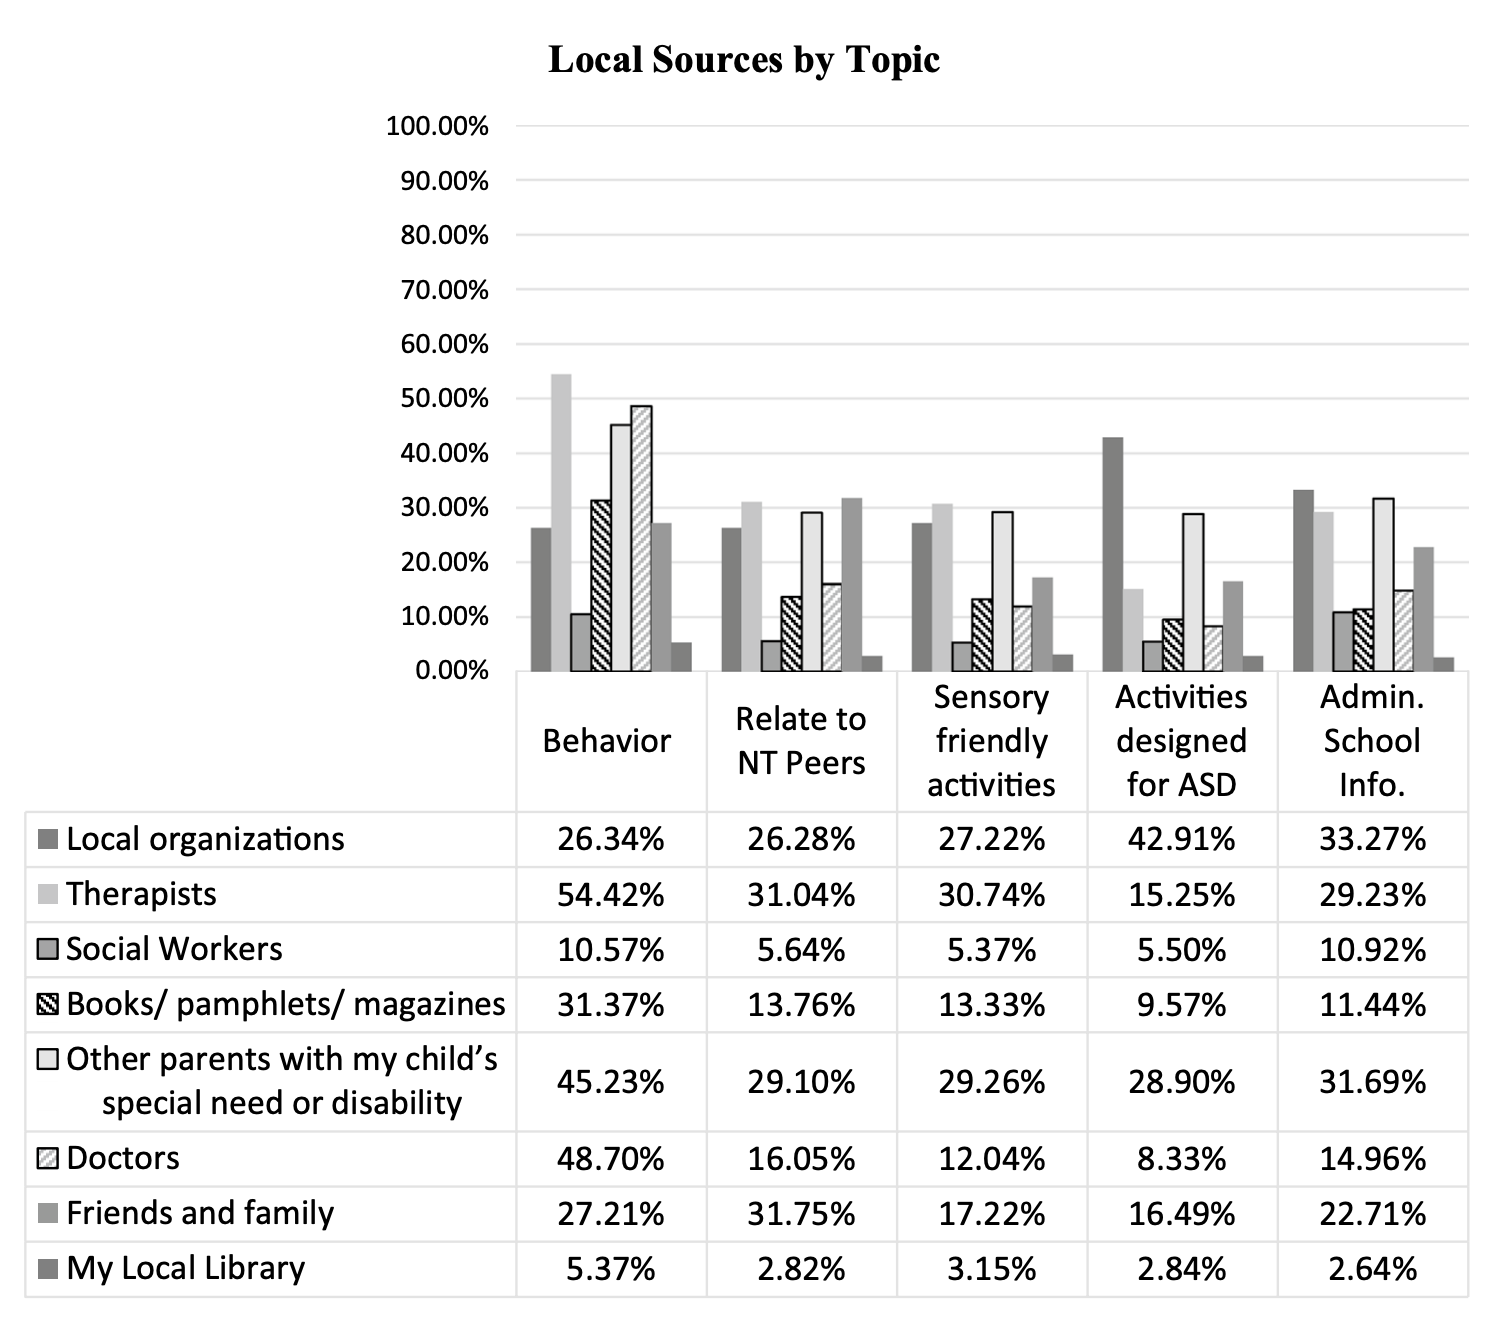 Local Sources by Topic